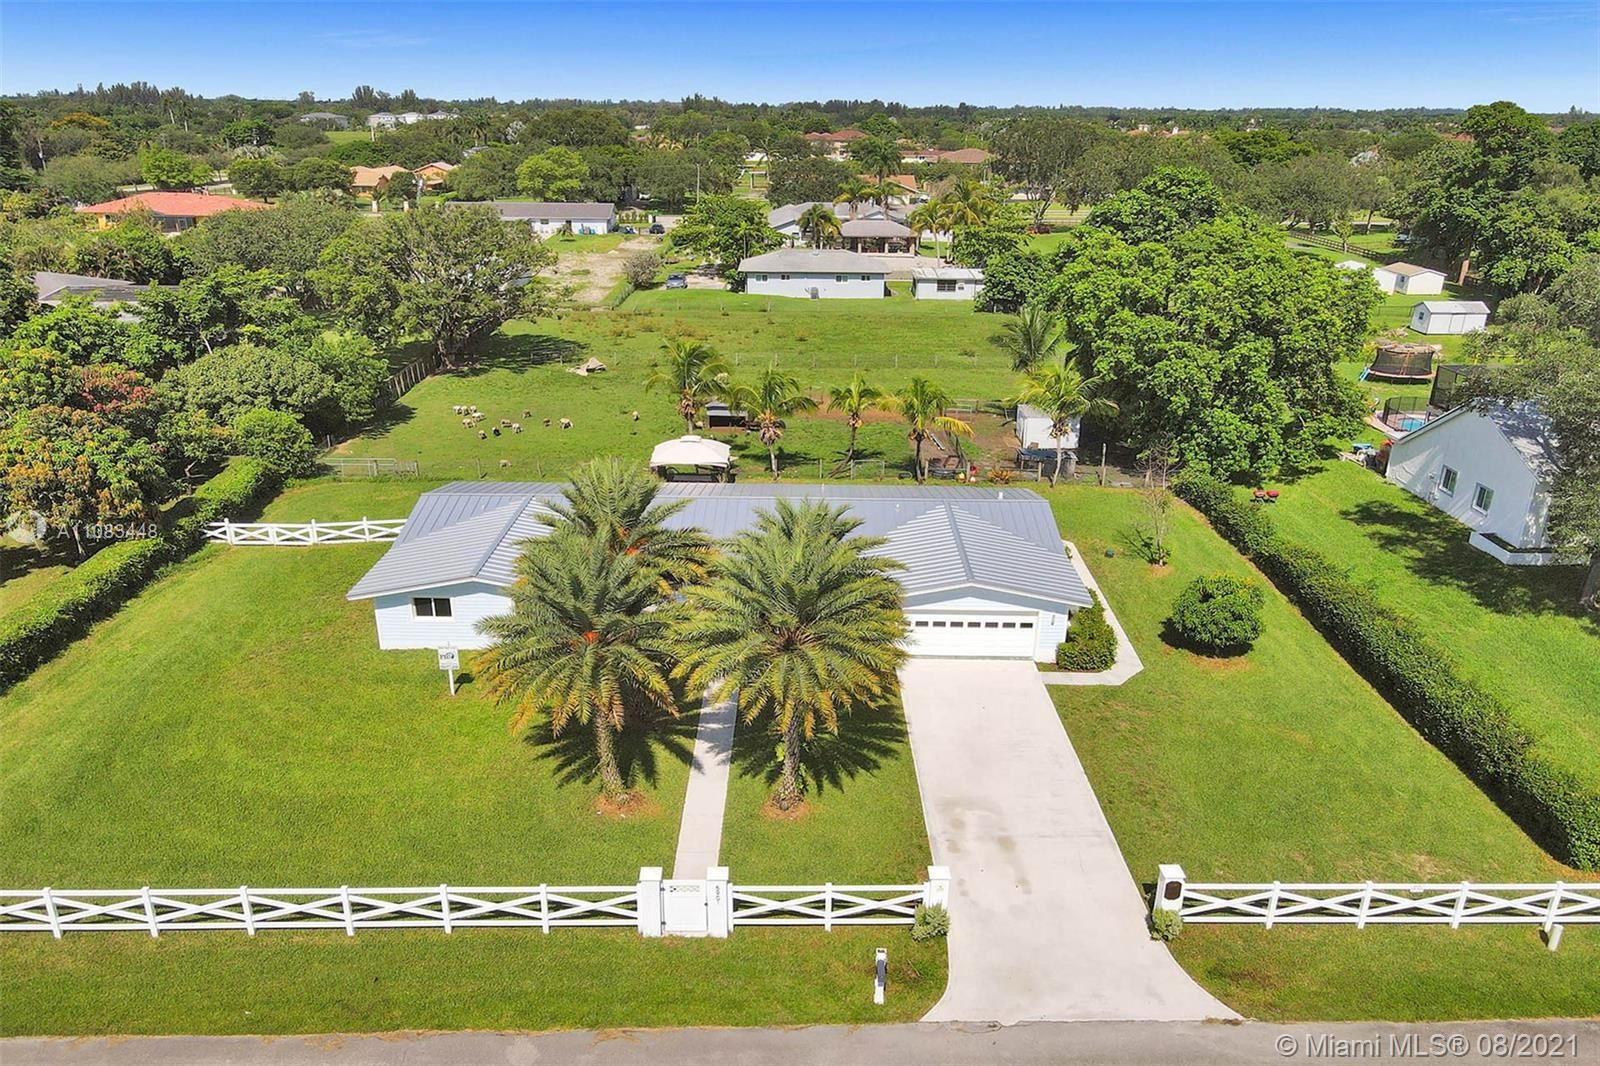 5901 SW 163rd Ave, SouthWest Ranches, FL 33331 - #: A11083448